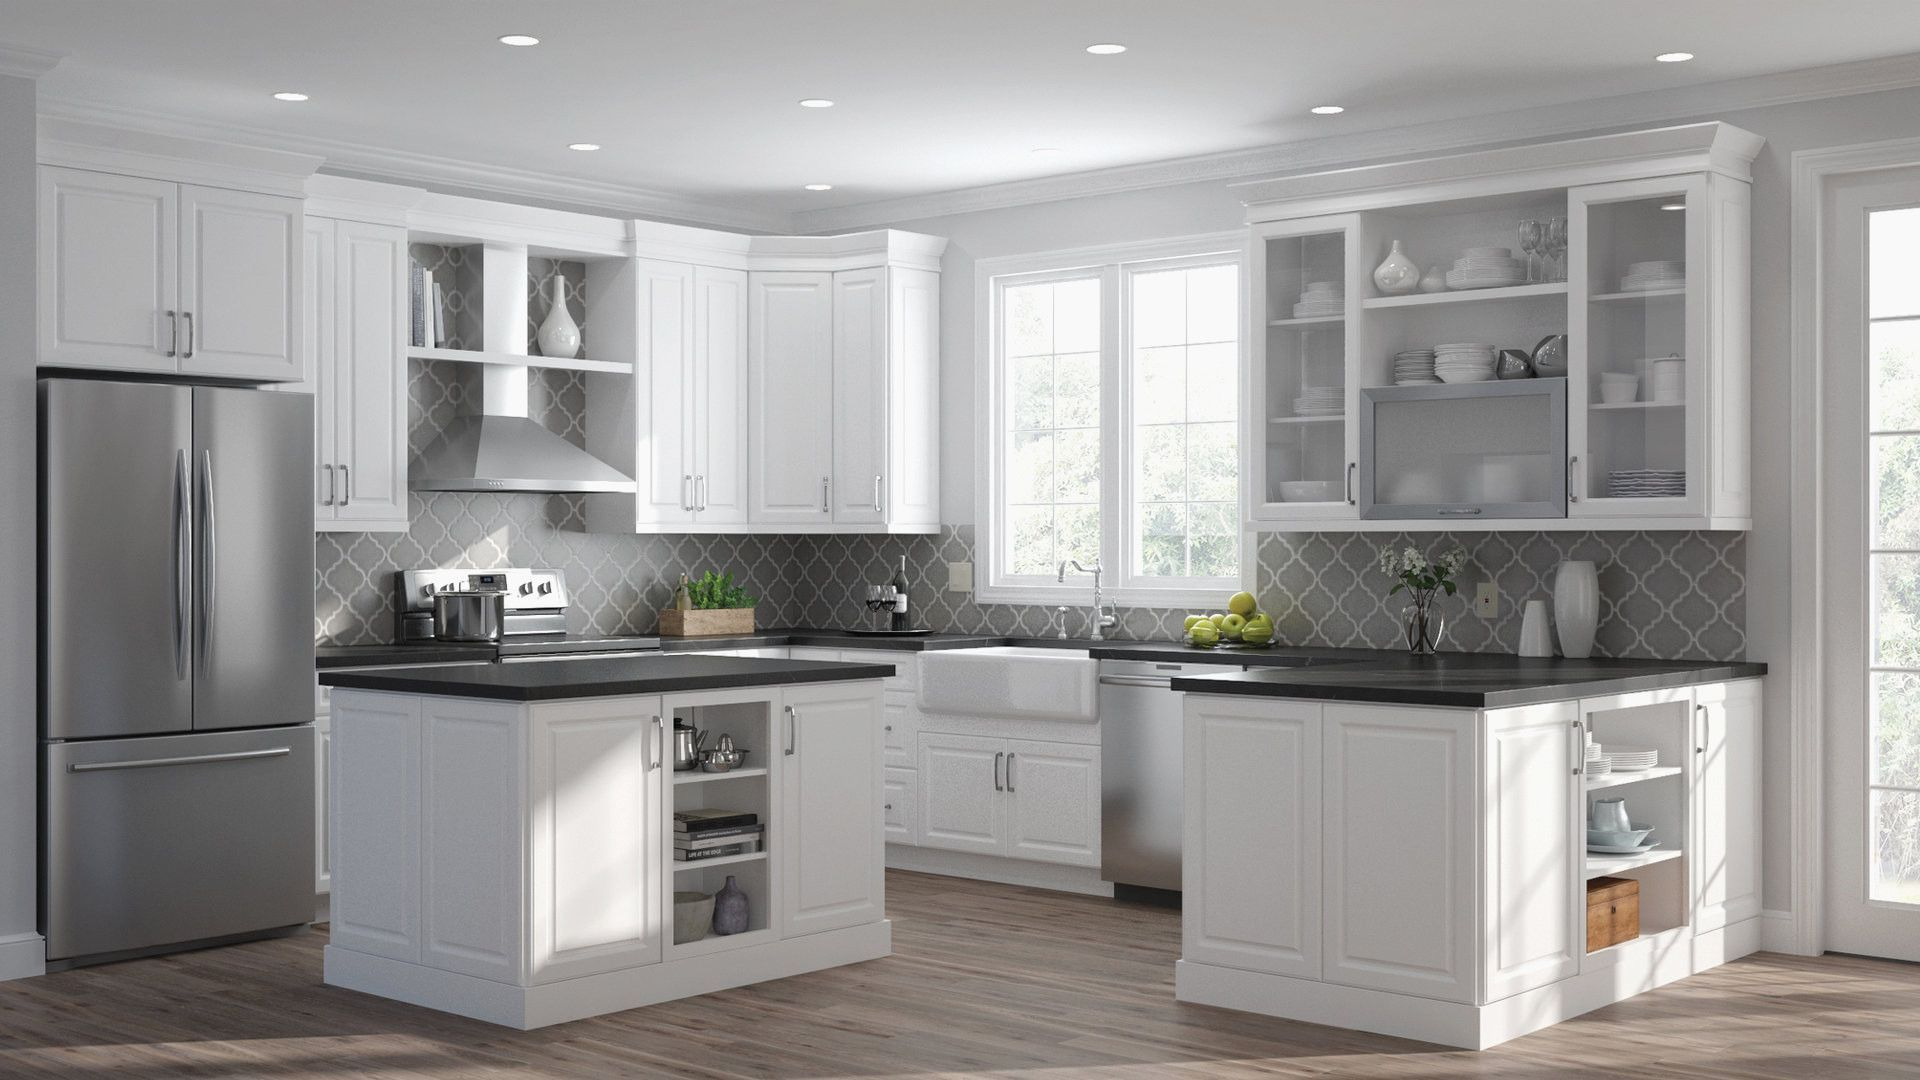 9 Inexpensive Kitchen Cabinets Ideascabinets ideas inexpensive ...